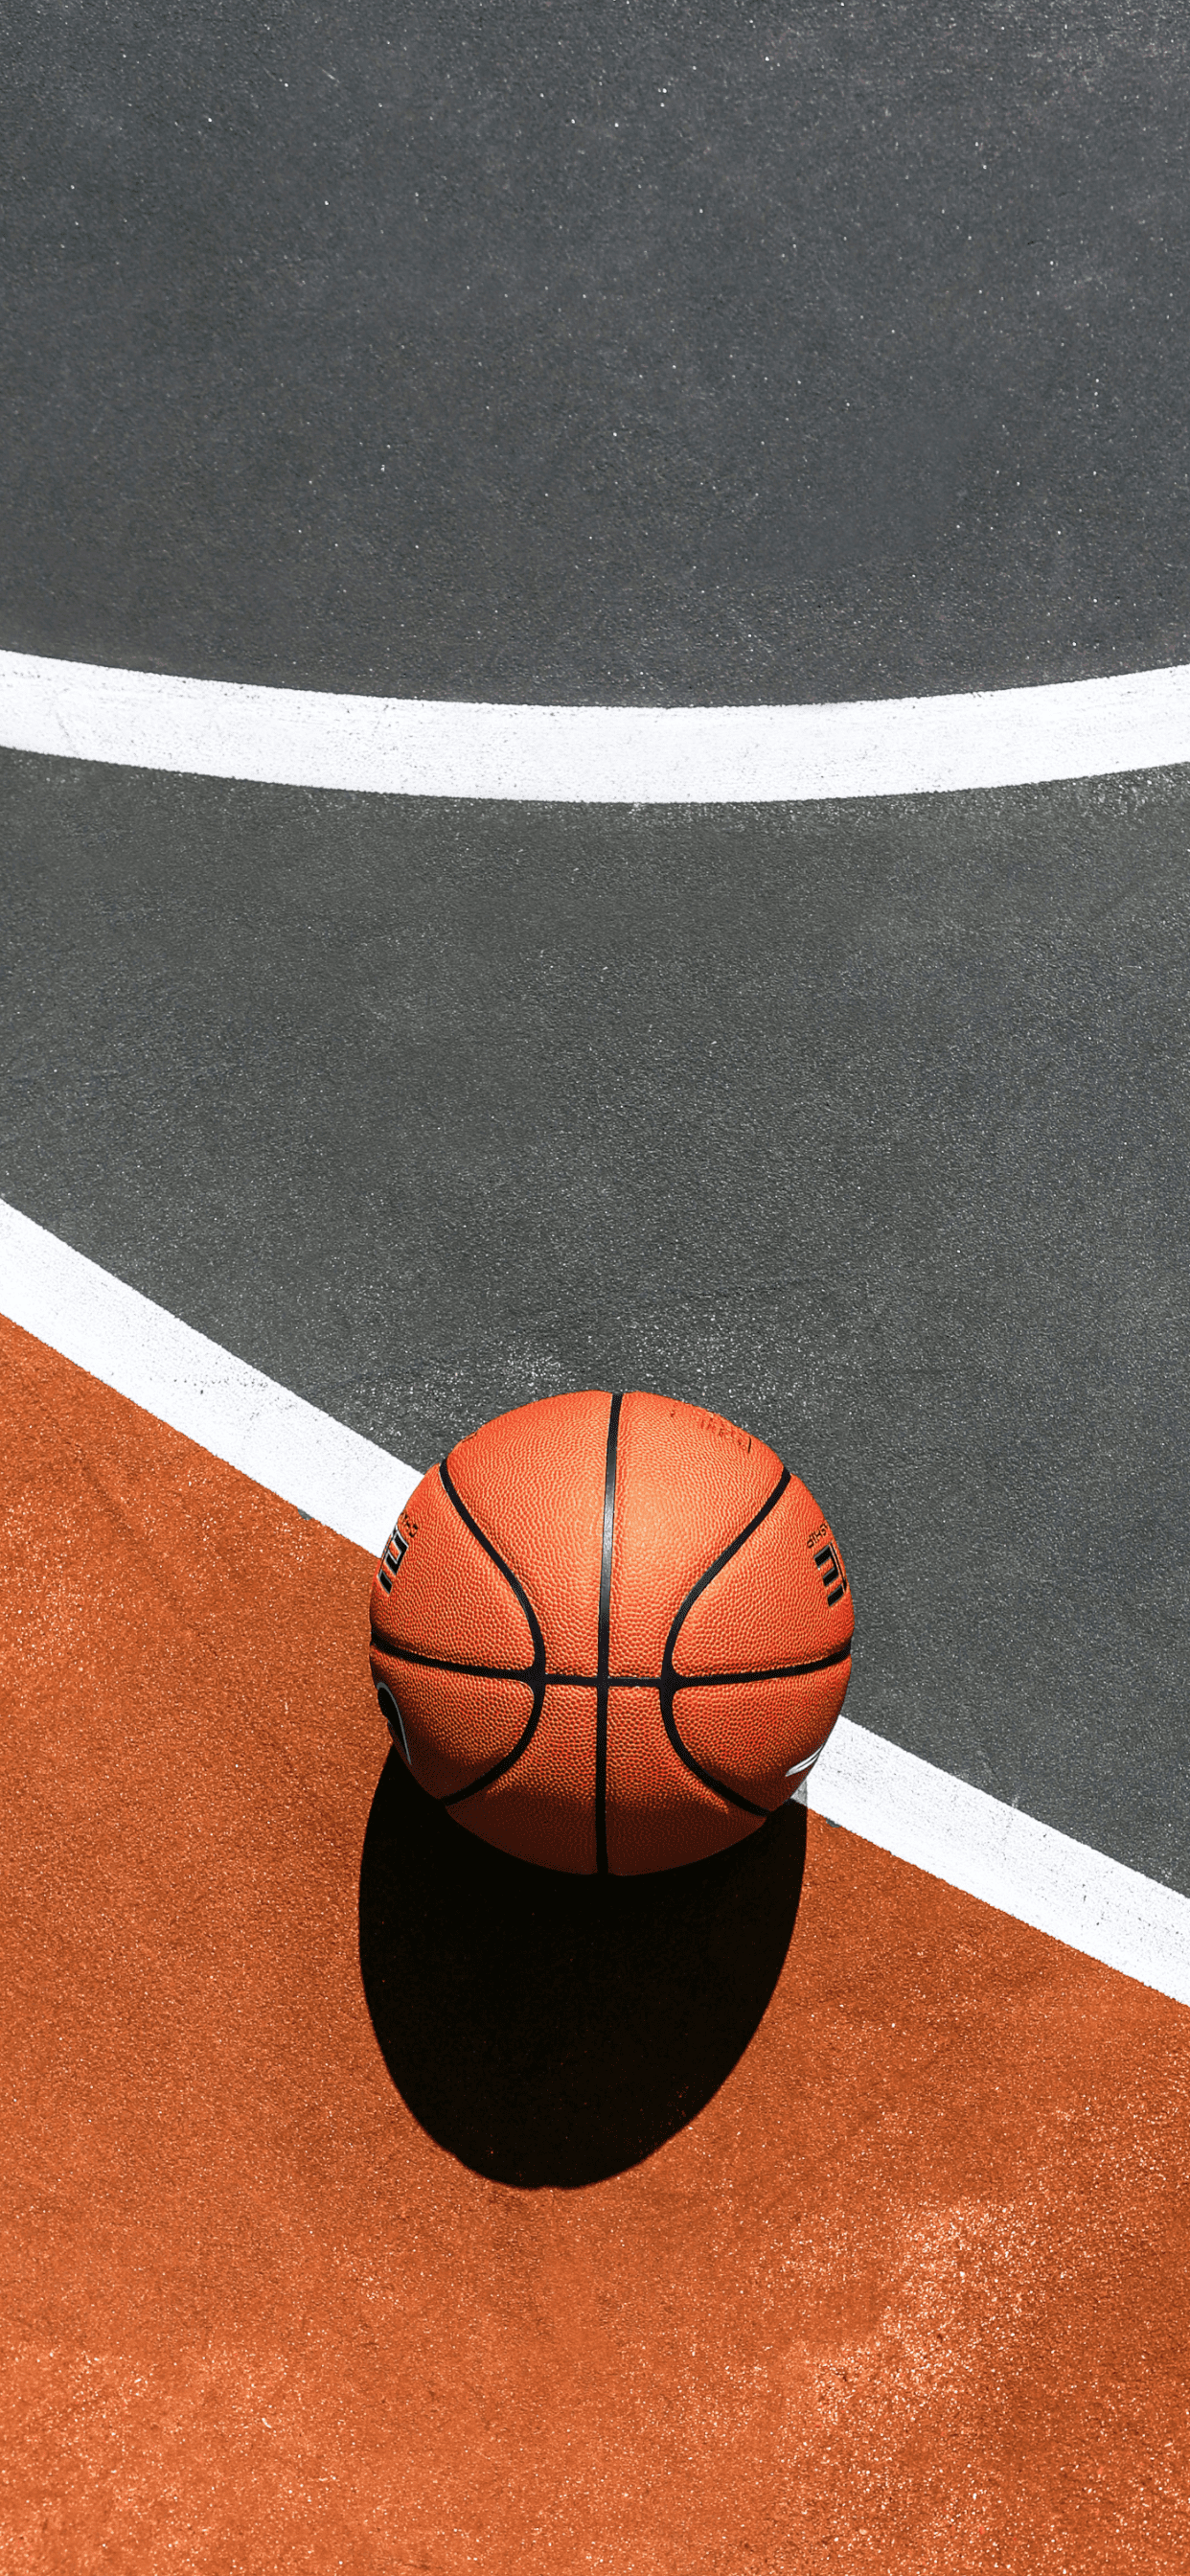 iPhone wallpapers basketball ball Basketball